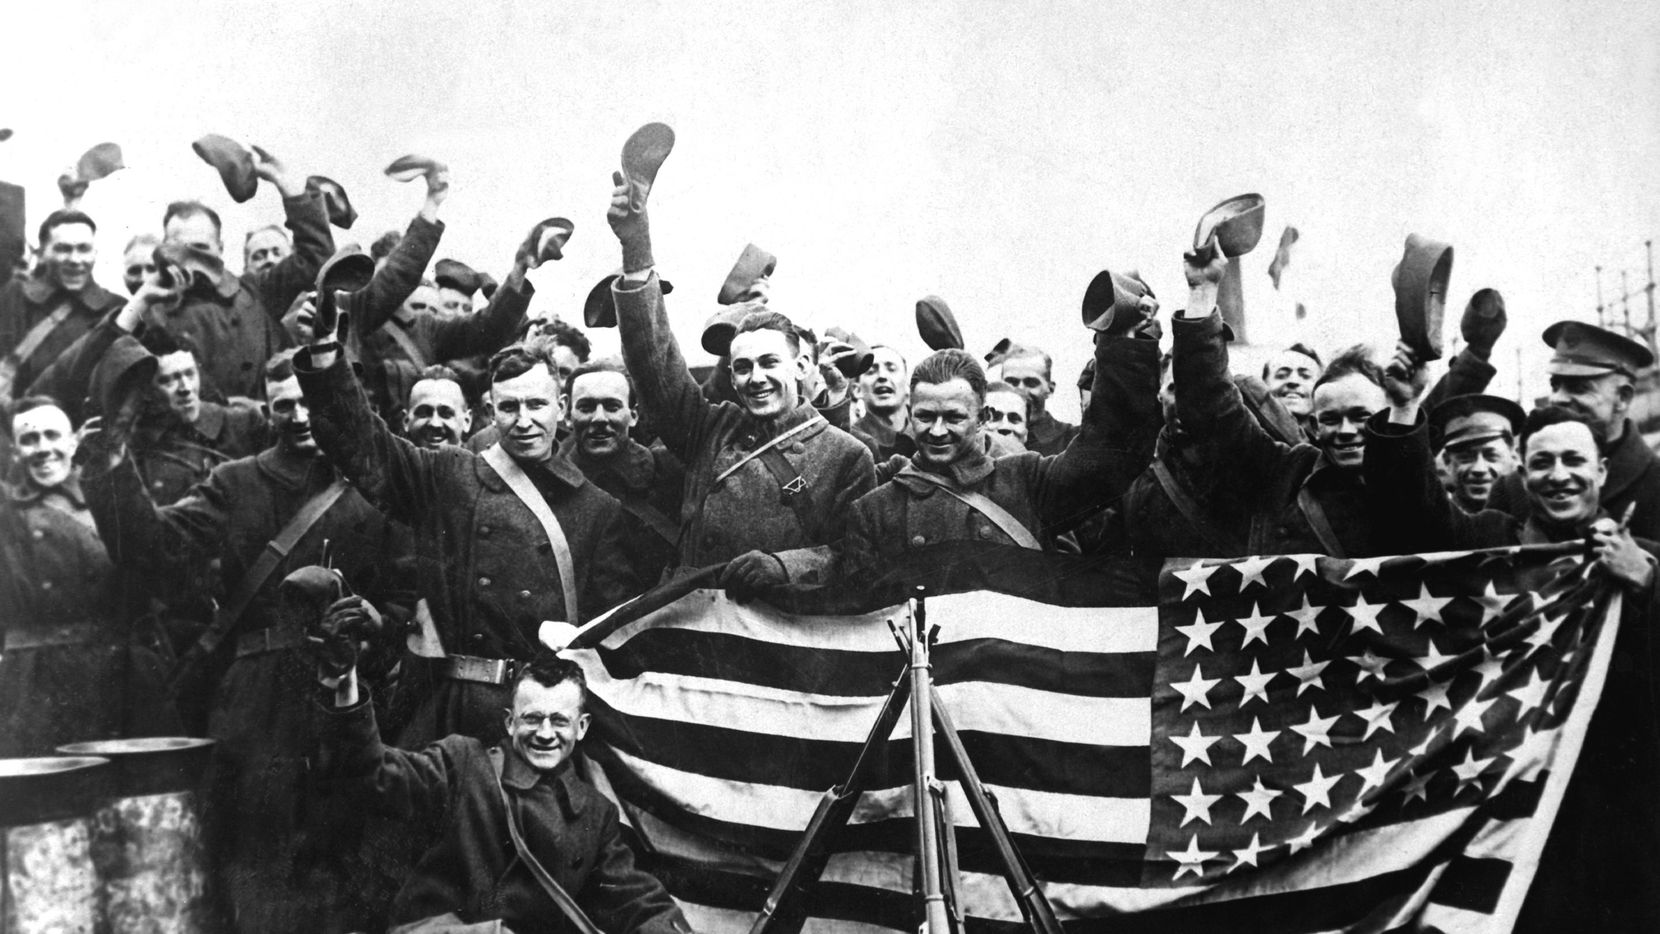 American troops in Russian port about to leave that country, circa 1919.